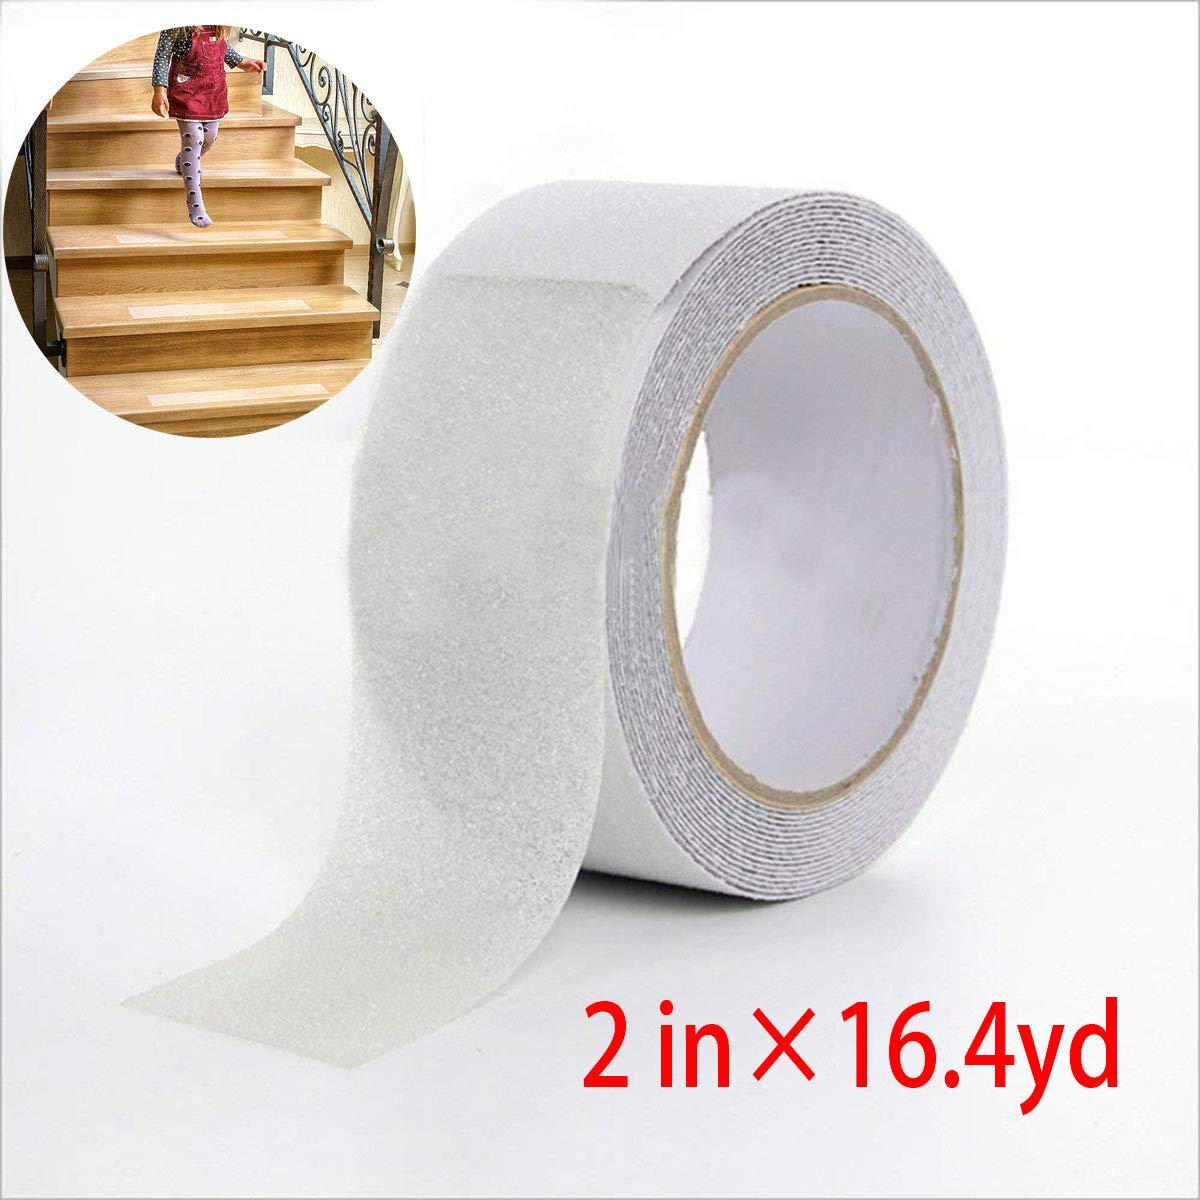 Anti Slip Tape, Anti Slip Tape for Kids, Elders & Pets, Safety Tub and Shower Tread, High Traction, Strong Grip Abrasive for indoor & outdoor, Prevents Slipping (Clear, 2 inch 16.5 yard)